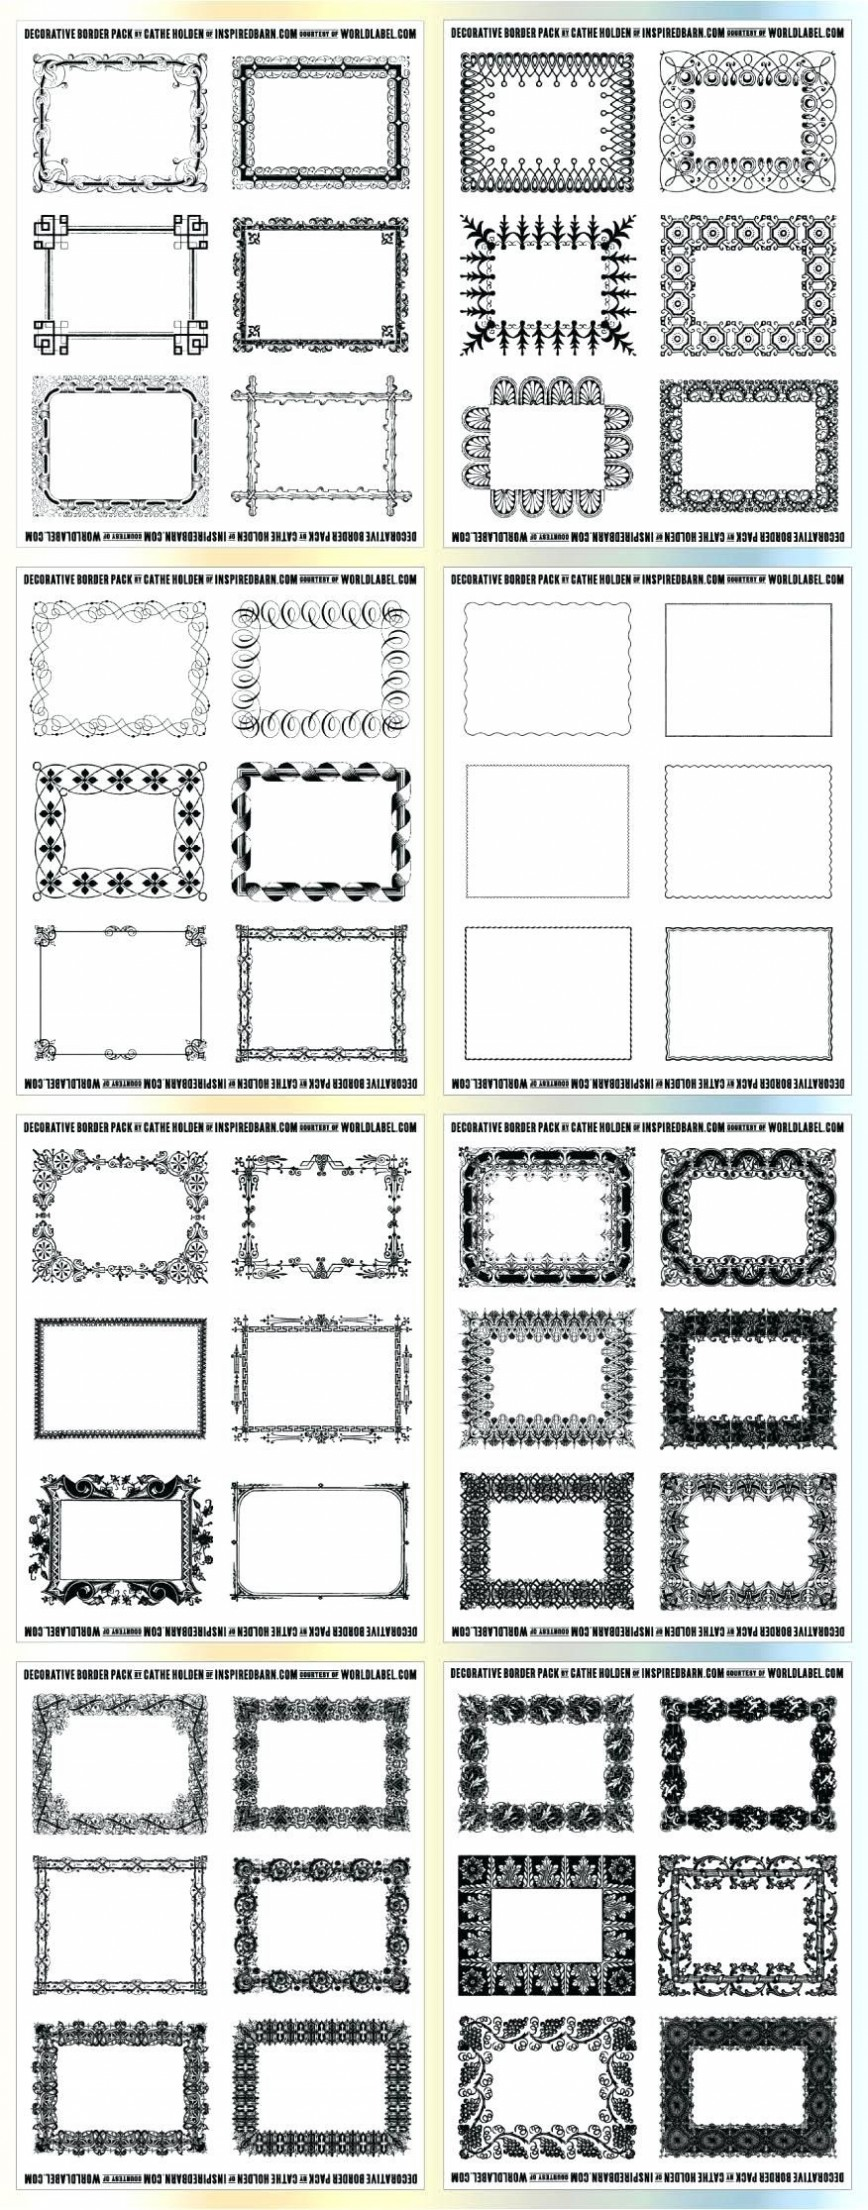 008 Wondrou Free Mail Label Template Example  Printable For Word 5160 Downloadable Mailing Download